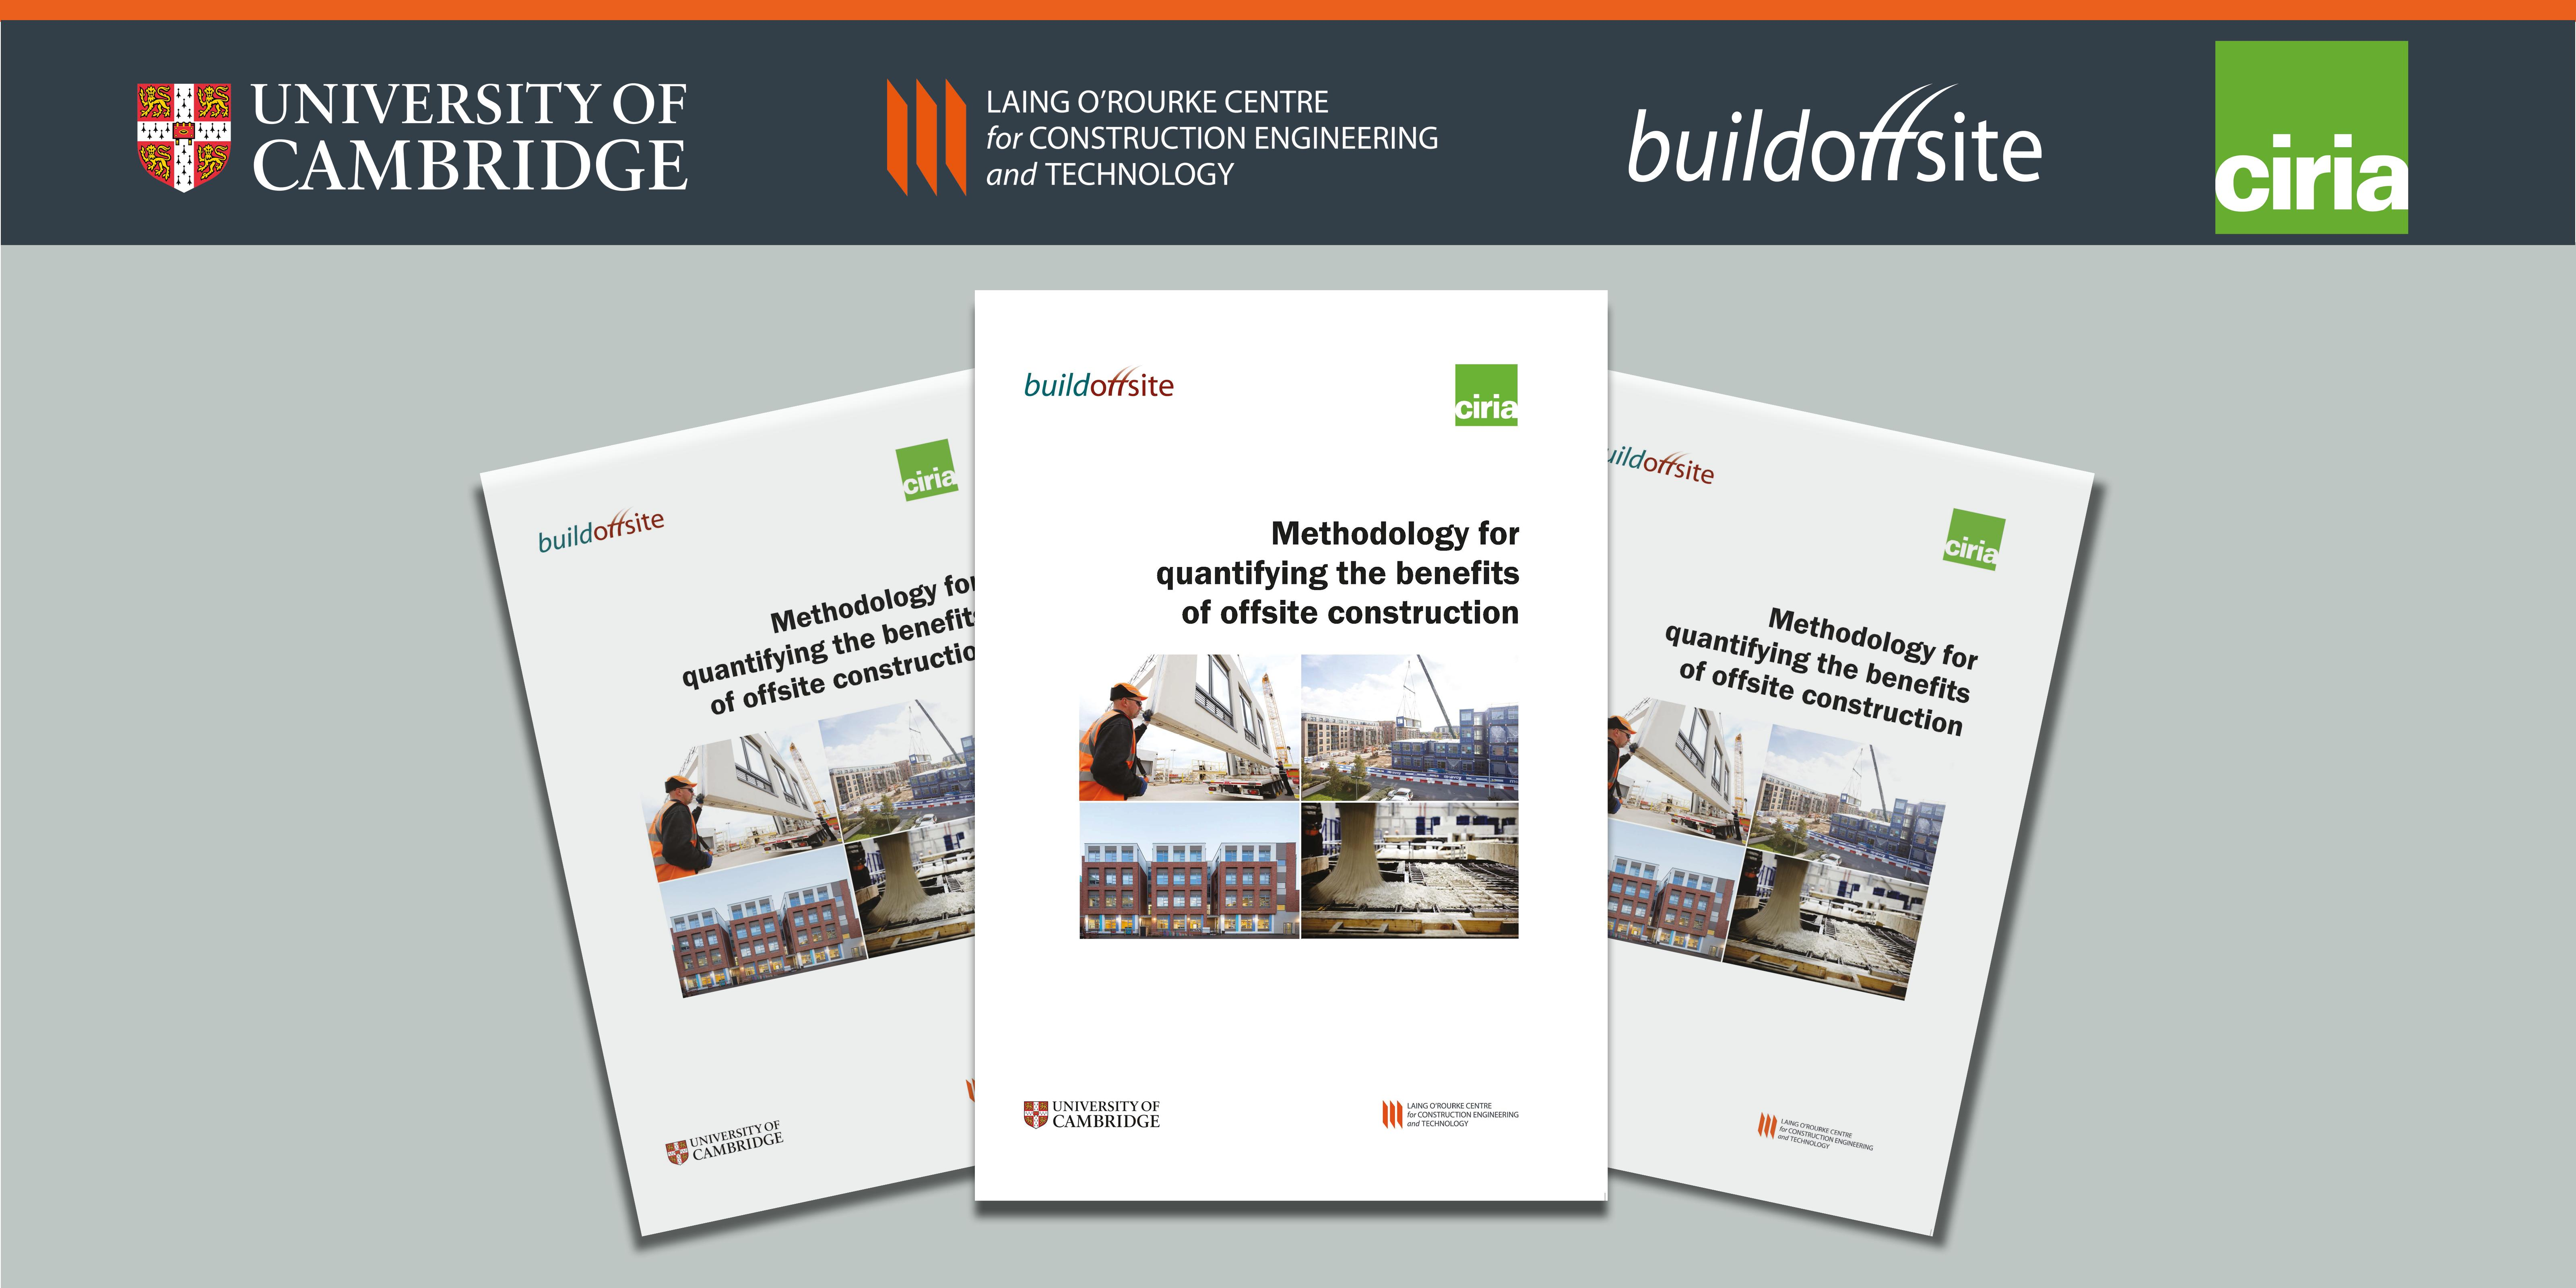 Methodology for quantifying the benefits of offsite construction